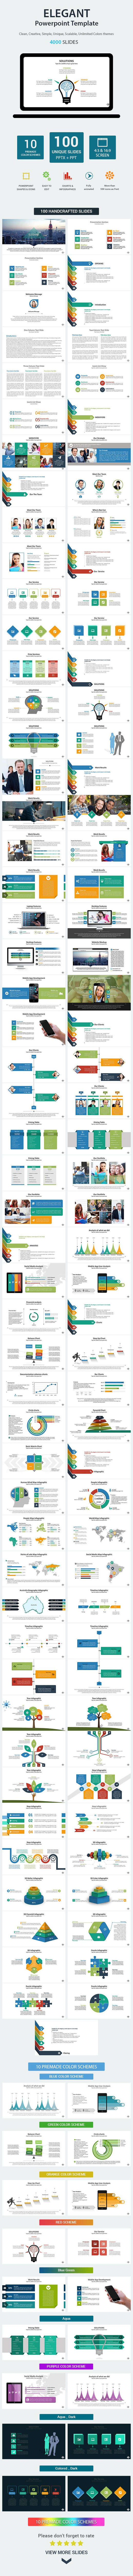 Elegant PowerPoint Presentation Template (PowerPoint Templates)